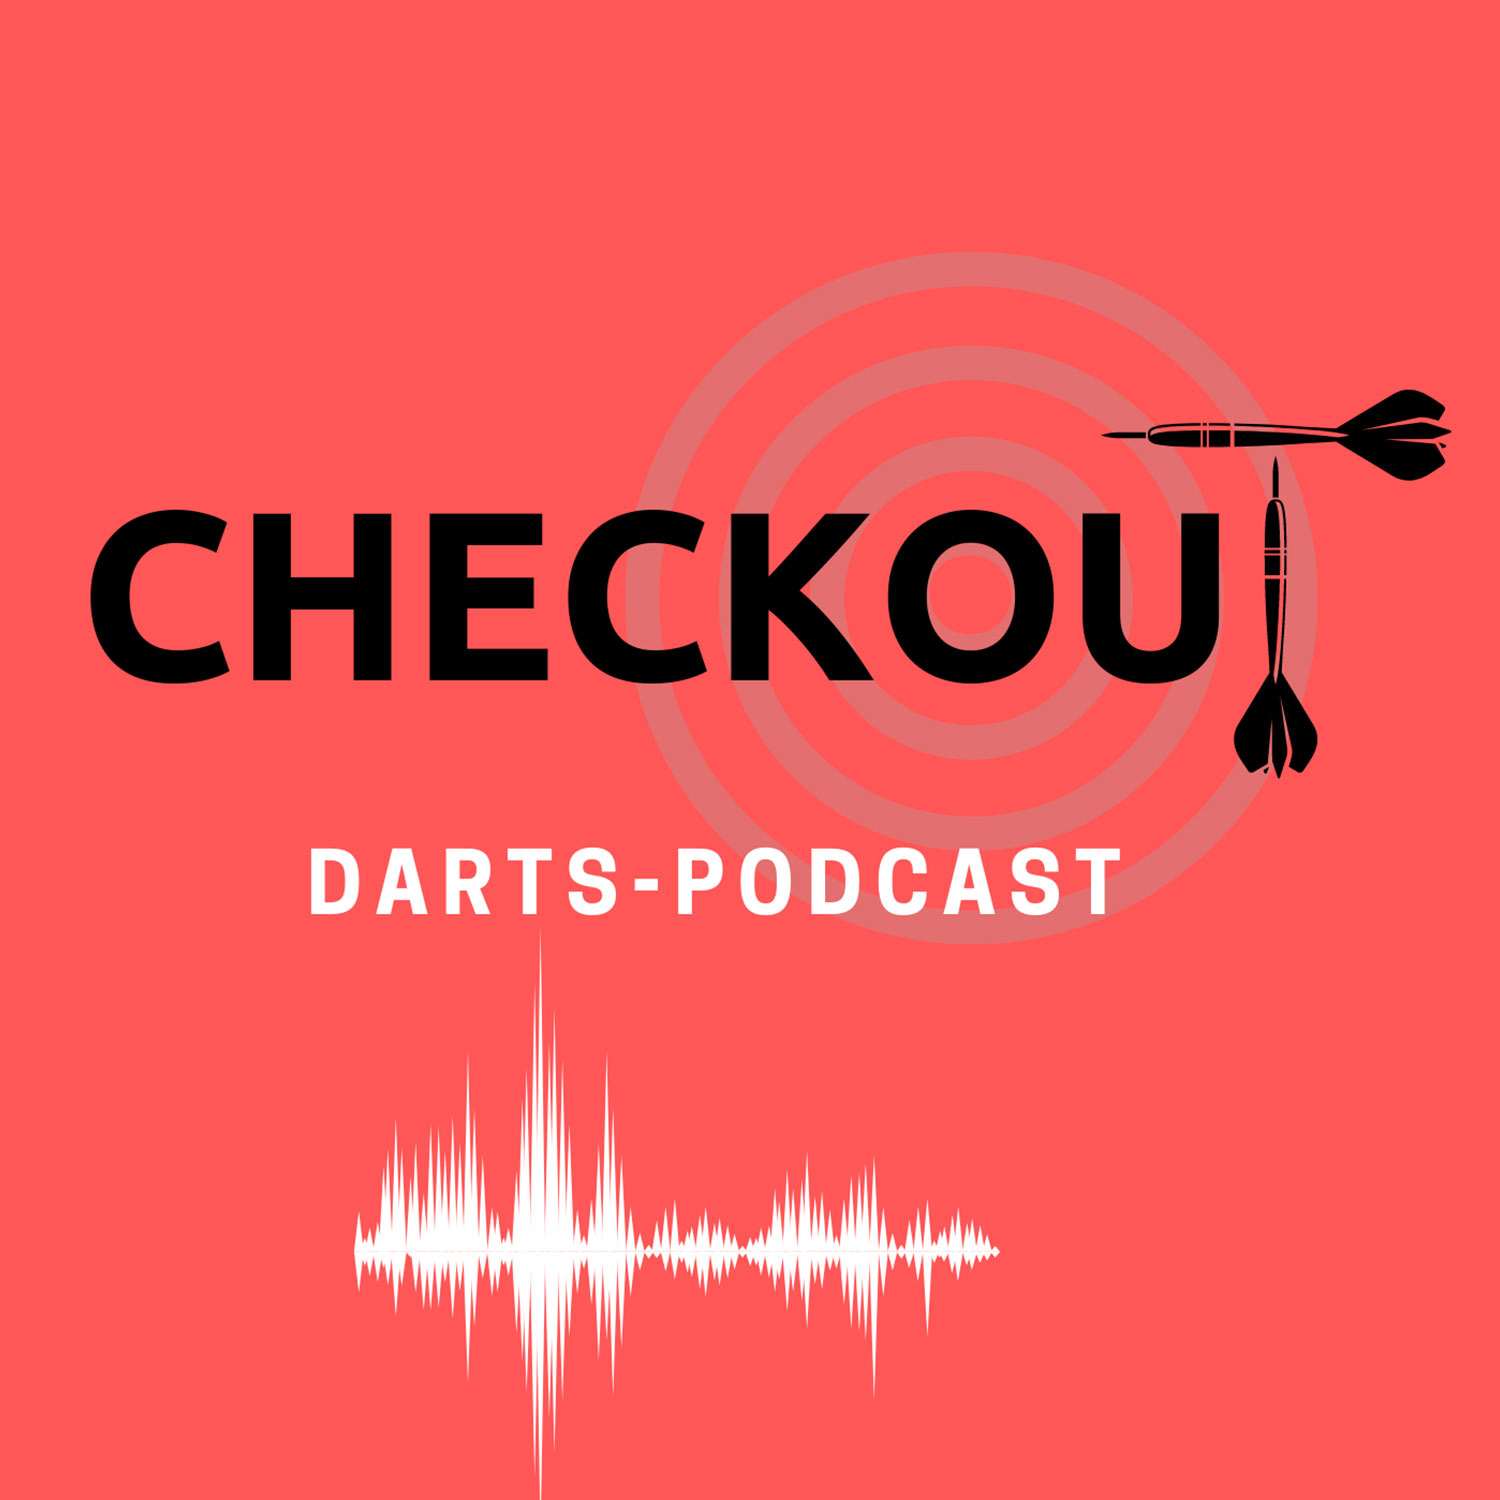 Checkout - Der Darts-Podcast